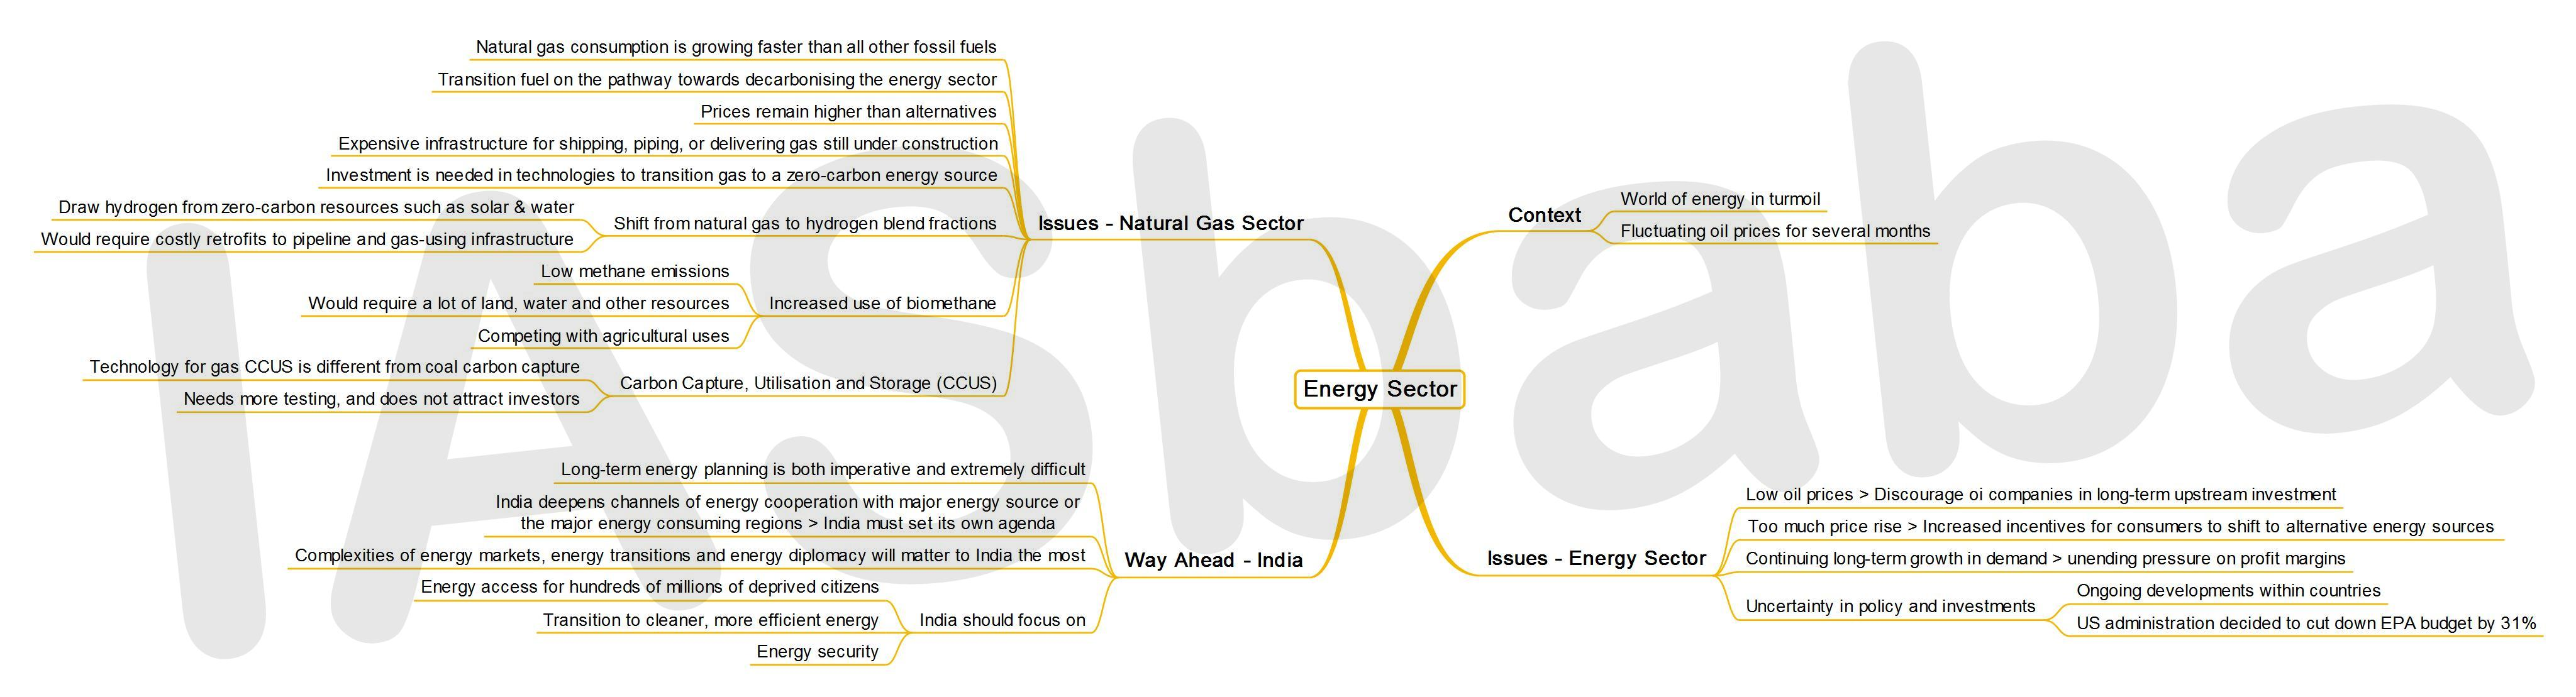 IASbaba's MINDMAP : Issue - Energy Sector